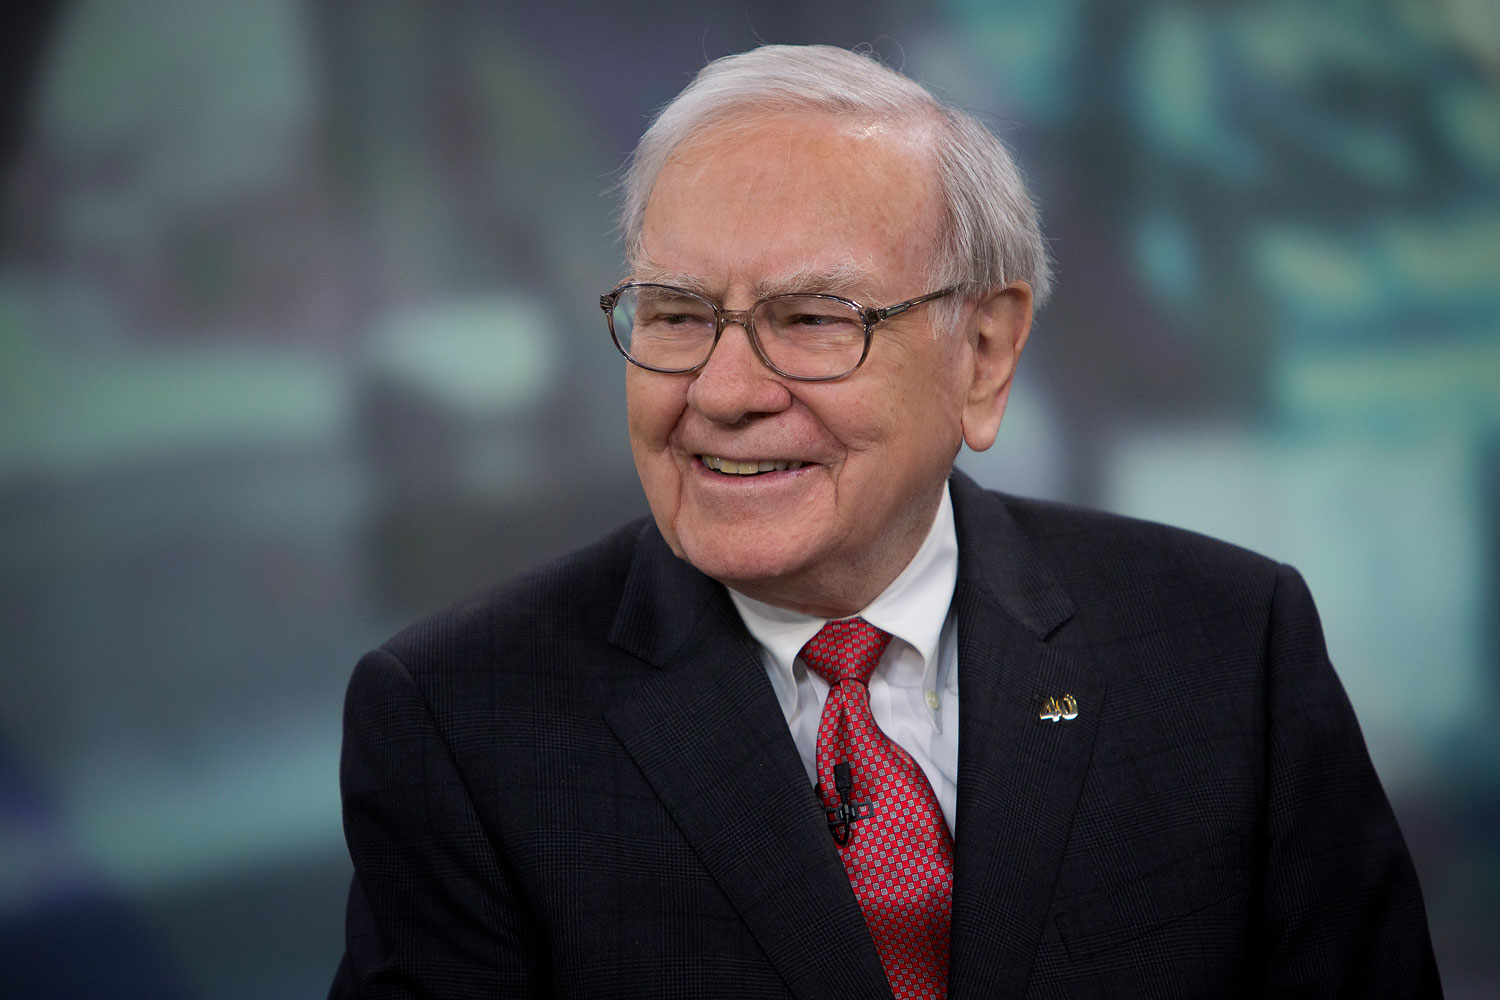 Warren Buffett, chairman and chief executive officer of Berkshire Hathaway Inc., speaks during an interview in New York, U.S., Oct. 22, 2013.